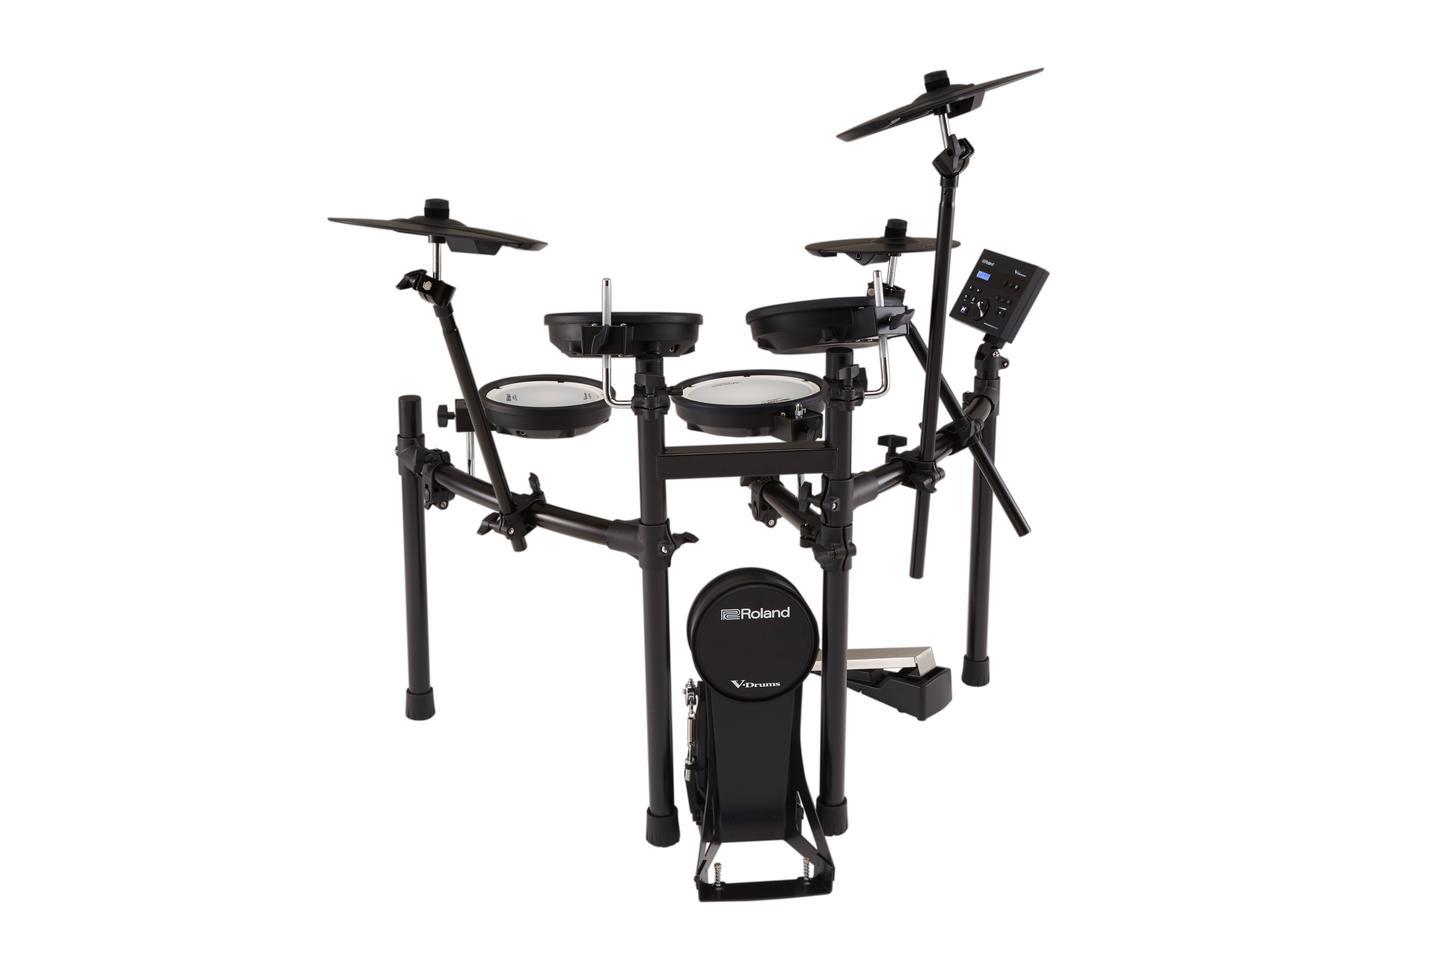 All of the V-Drums components are securely clamped to a custom stand